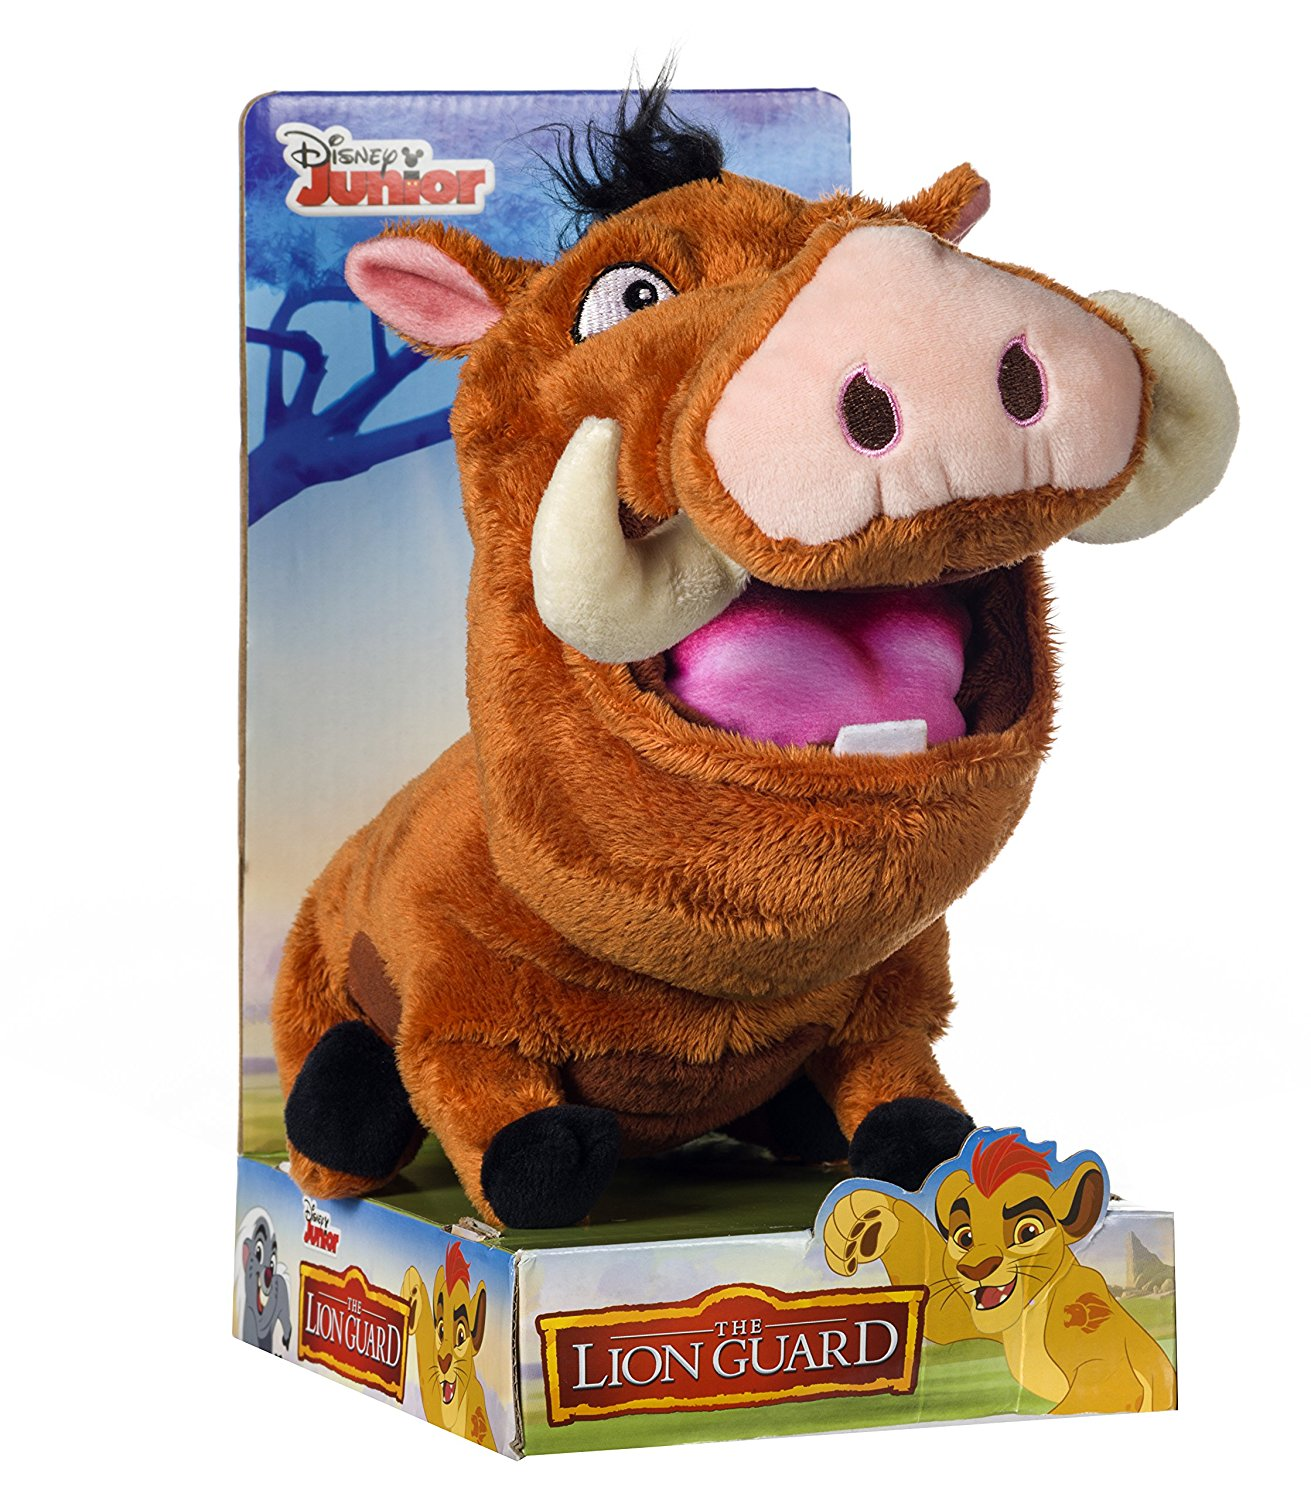 The Lion King Lion Guard Pumbaa The Warthog Plush Soft Toy - Click Image to Close